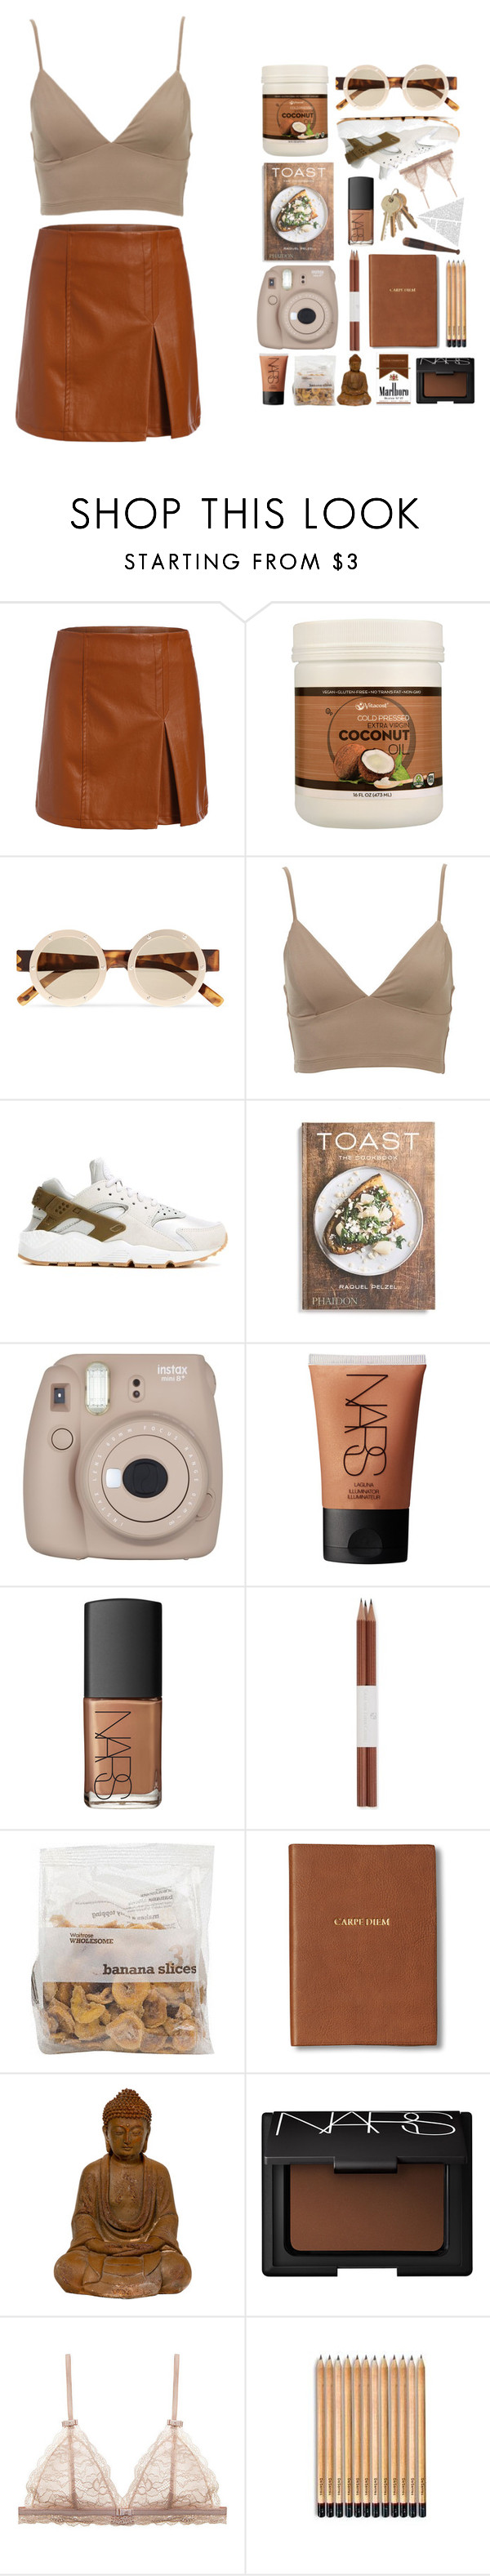 """""""Often"""" by ashola18 ❤ liked on Polyvore featuring Le Specs, NIKE, PHAIDON, NARS Cosmetics, Faber-Castell, Monica Rich Kosann, Leather, romwe, nike and shein"""